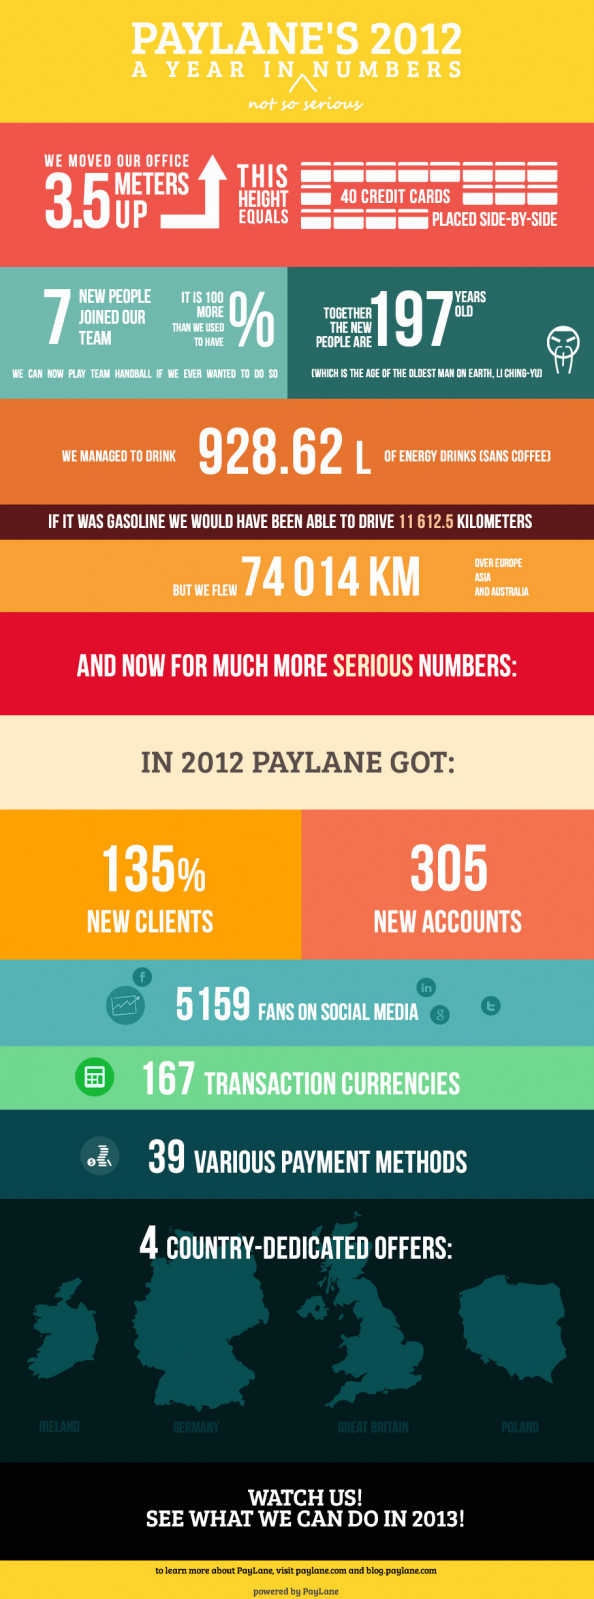 PayLane&#039;s 2012 - A Year In (Not So Serious) Numbers Infographic